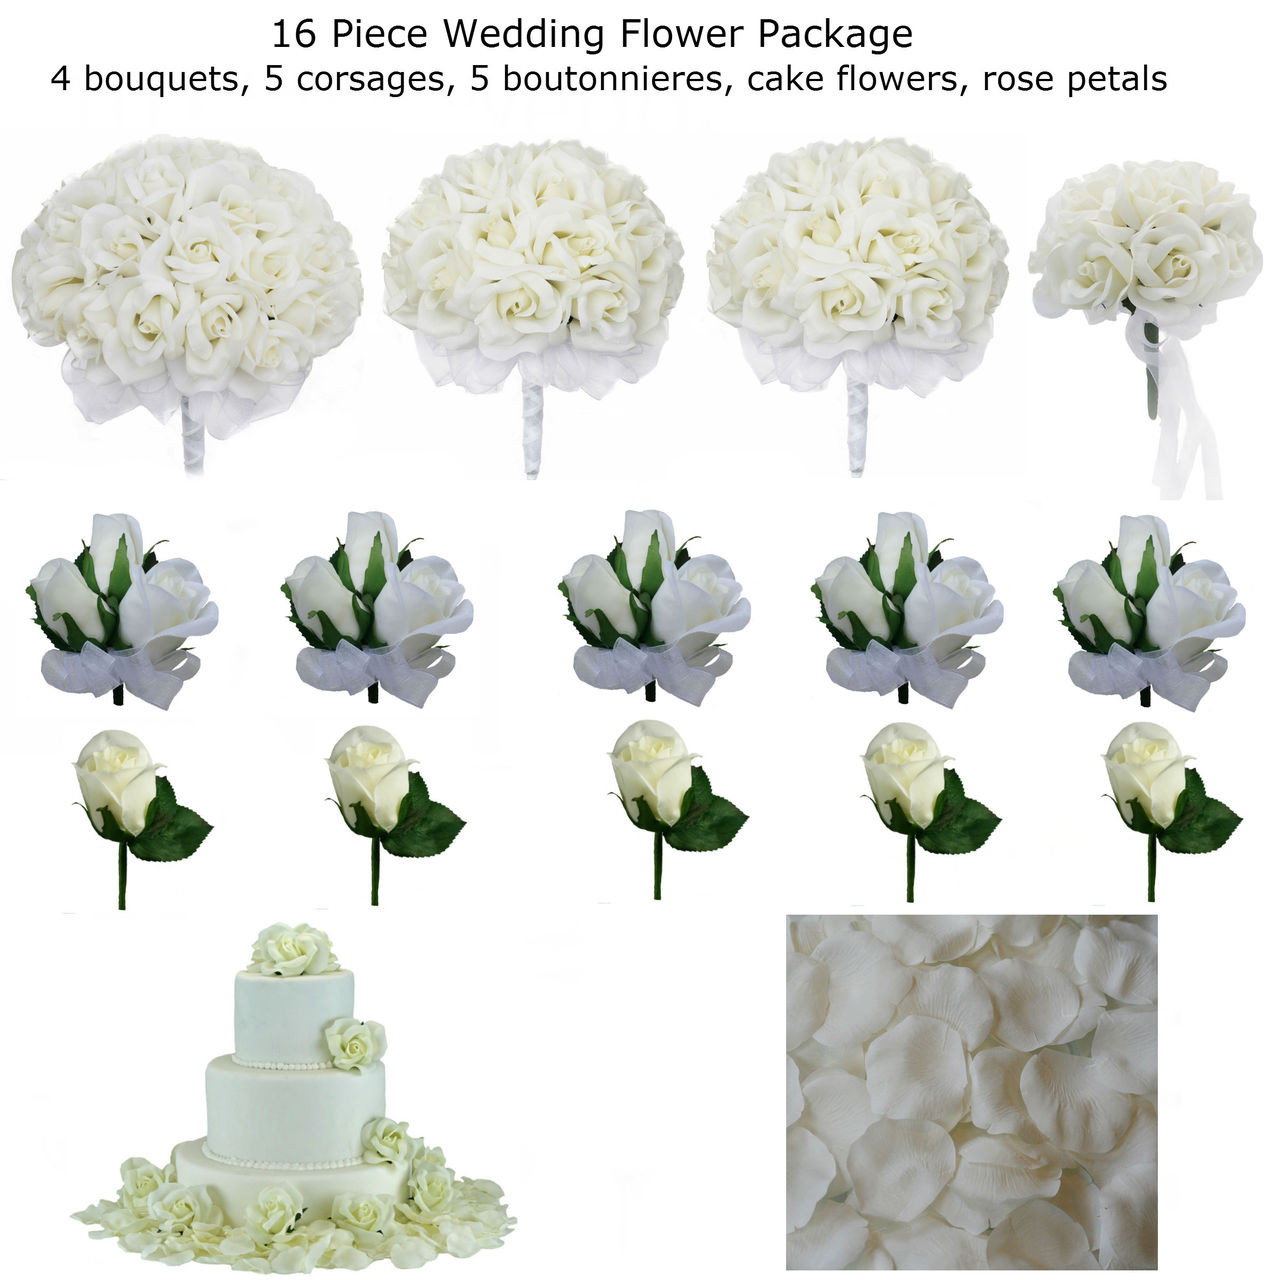 16 Piece Wedding Package